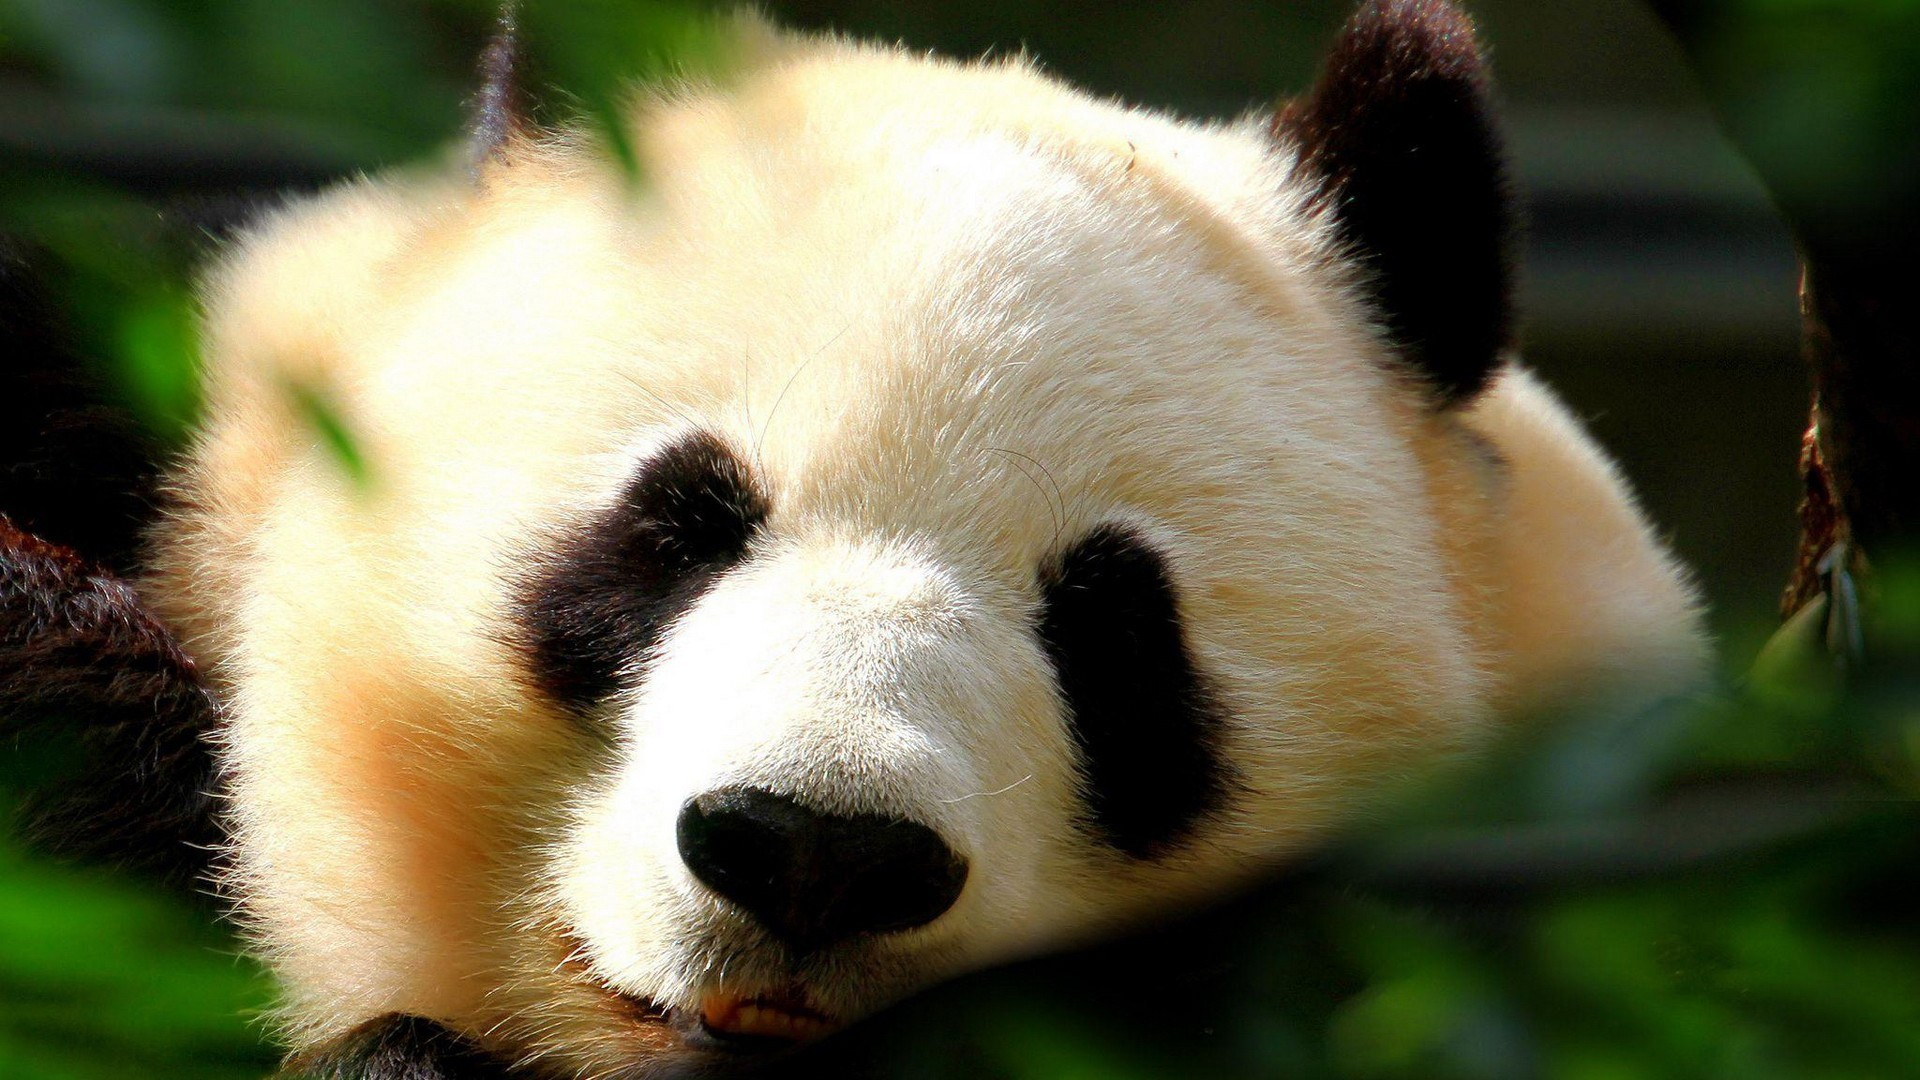 Cute Animal Wallpaper and Background